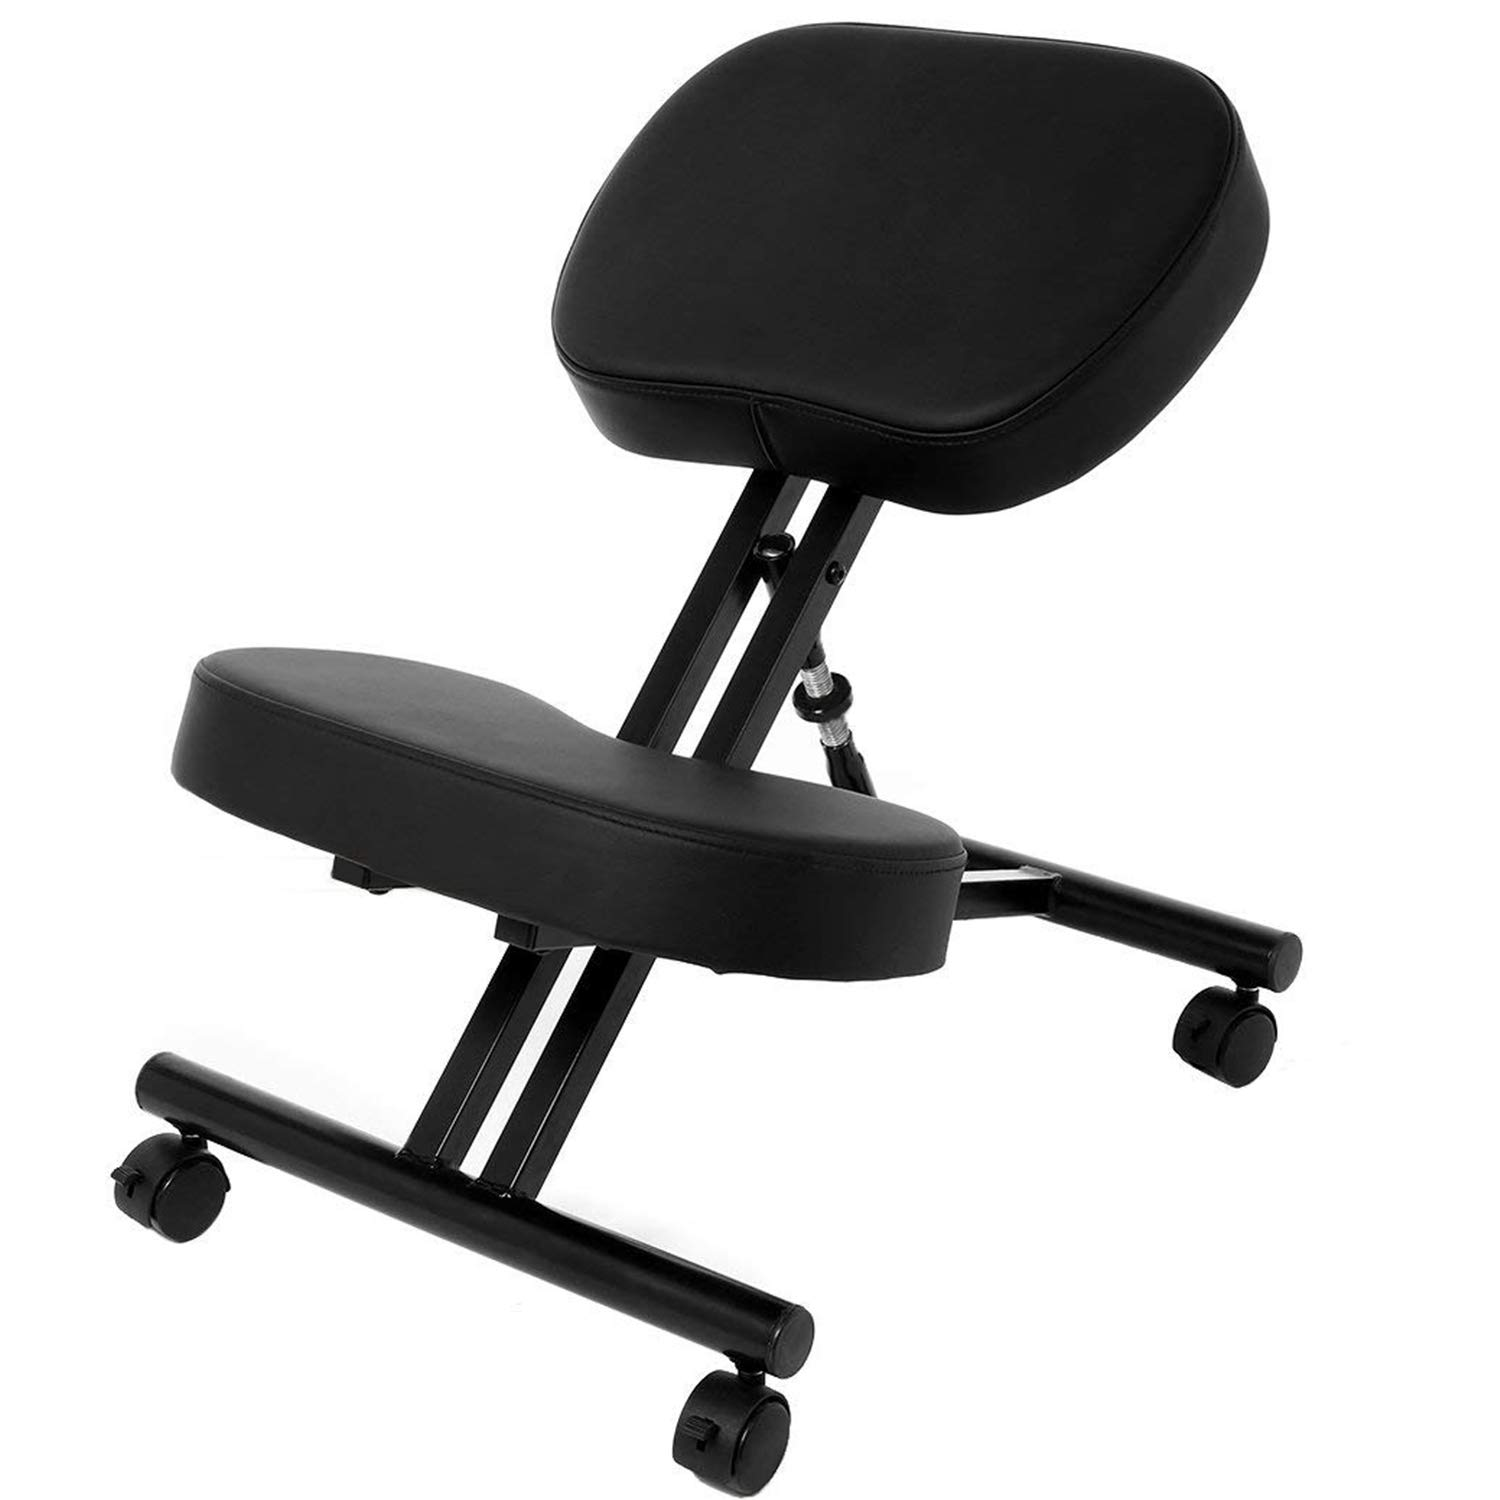 Ergonomic Kneeling Chair, Adjustable Stool for Home and Office - Improve Your Posture with an Angled Seat - Thick Comfortable Moulded Foam Cushions - Smooth Gliding Casters & Brake Casters